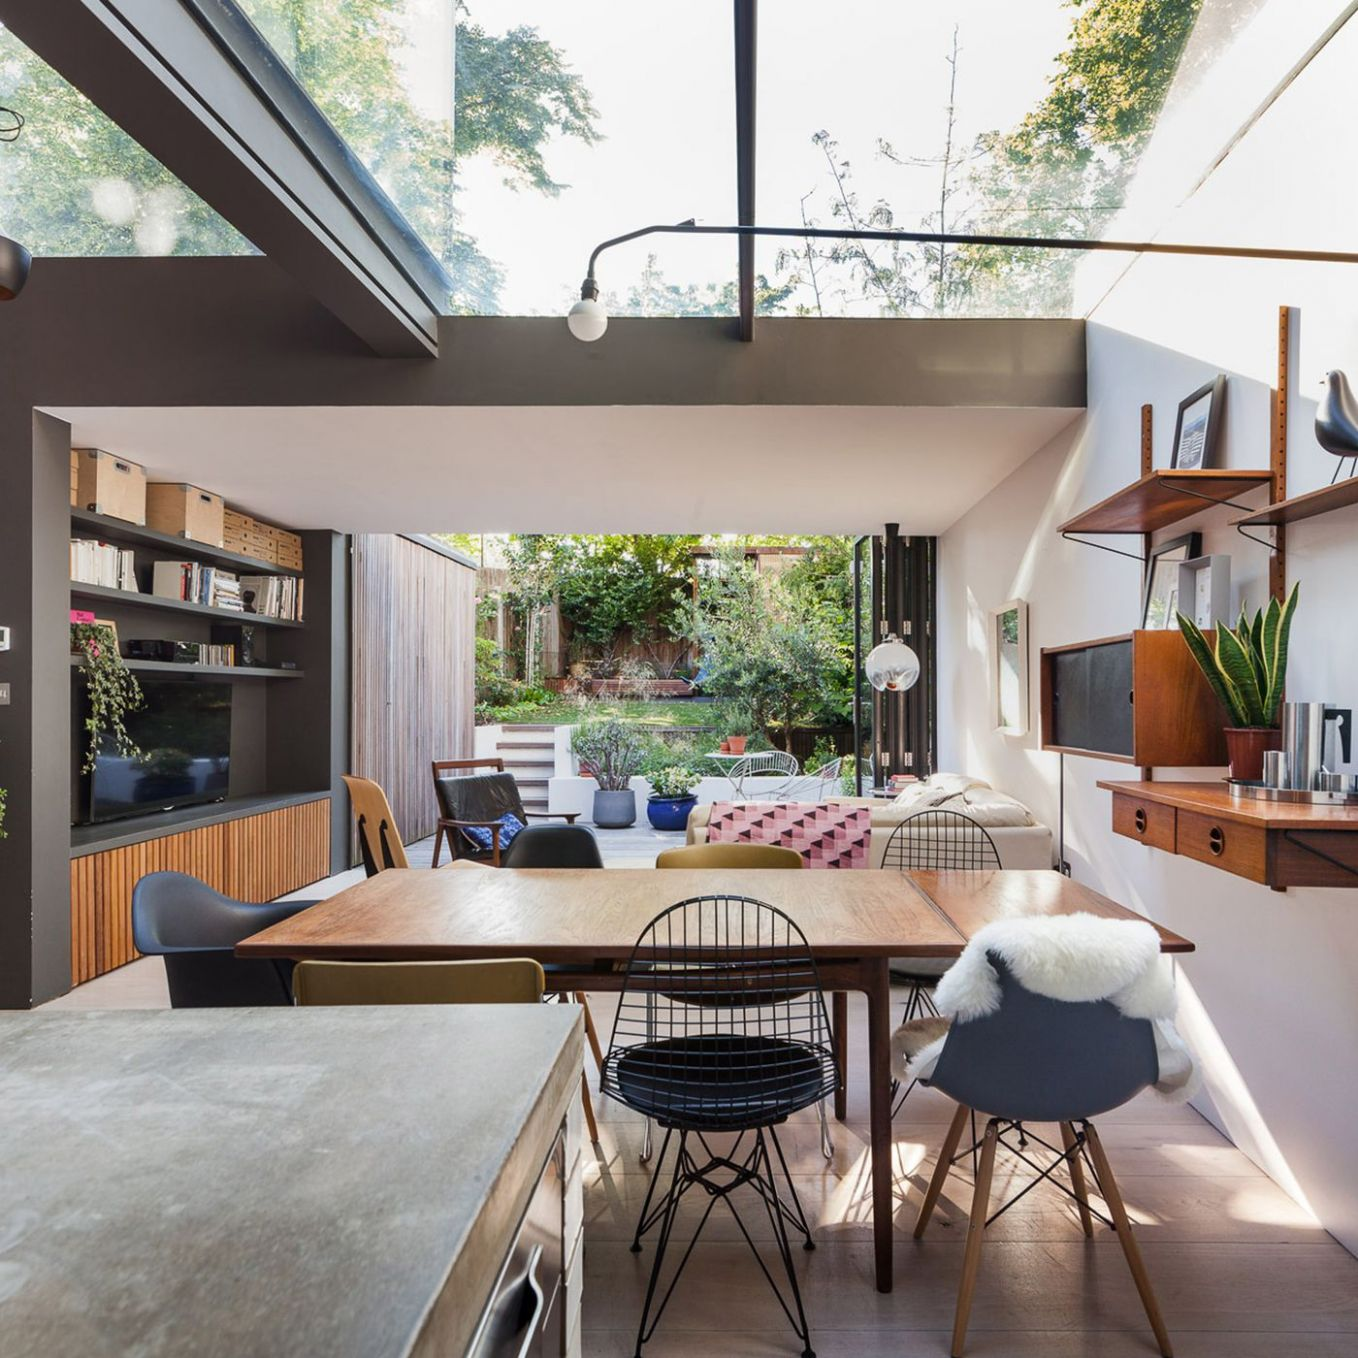 Home extension ideas: 11 looks to inspire your renovation - Curbed - house renovation inspiration